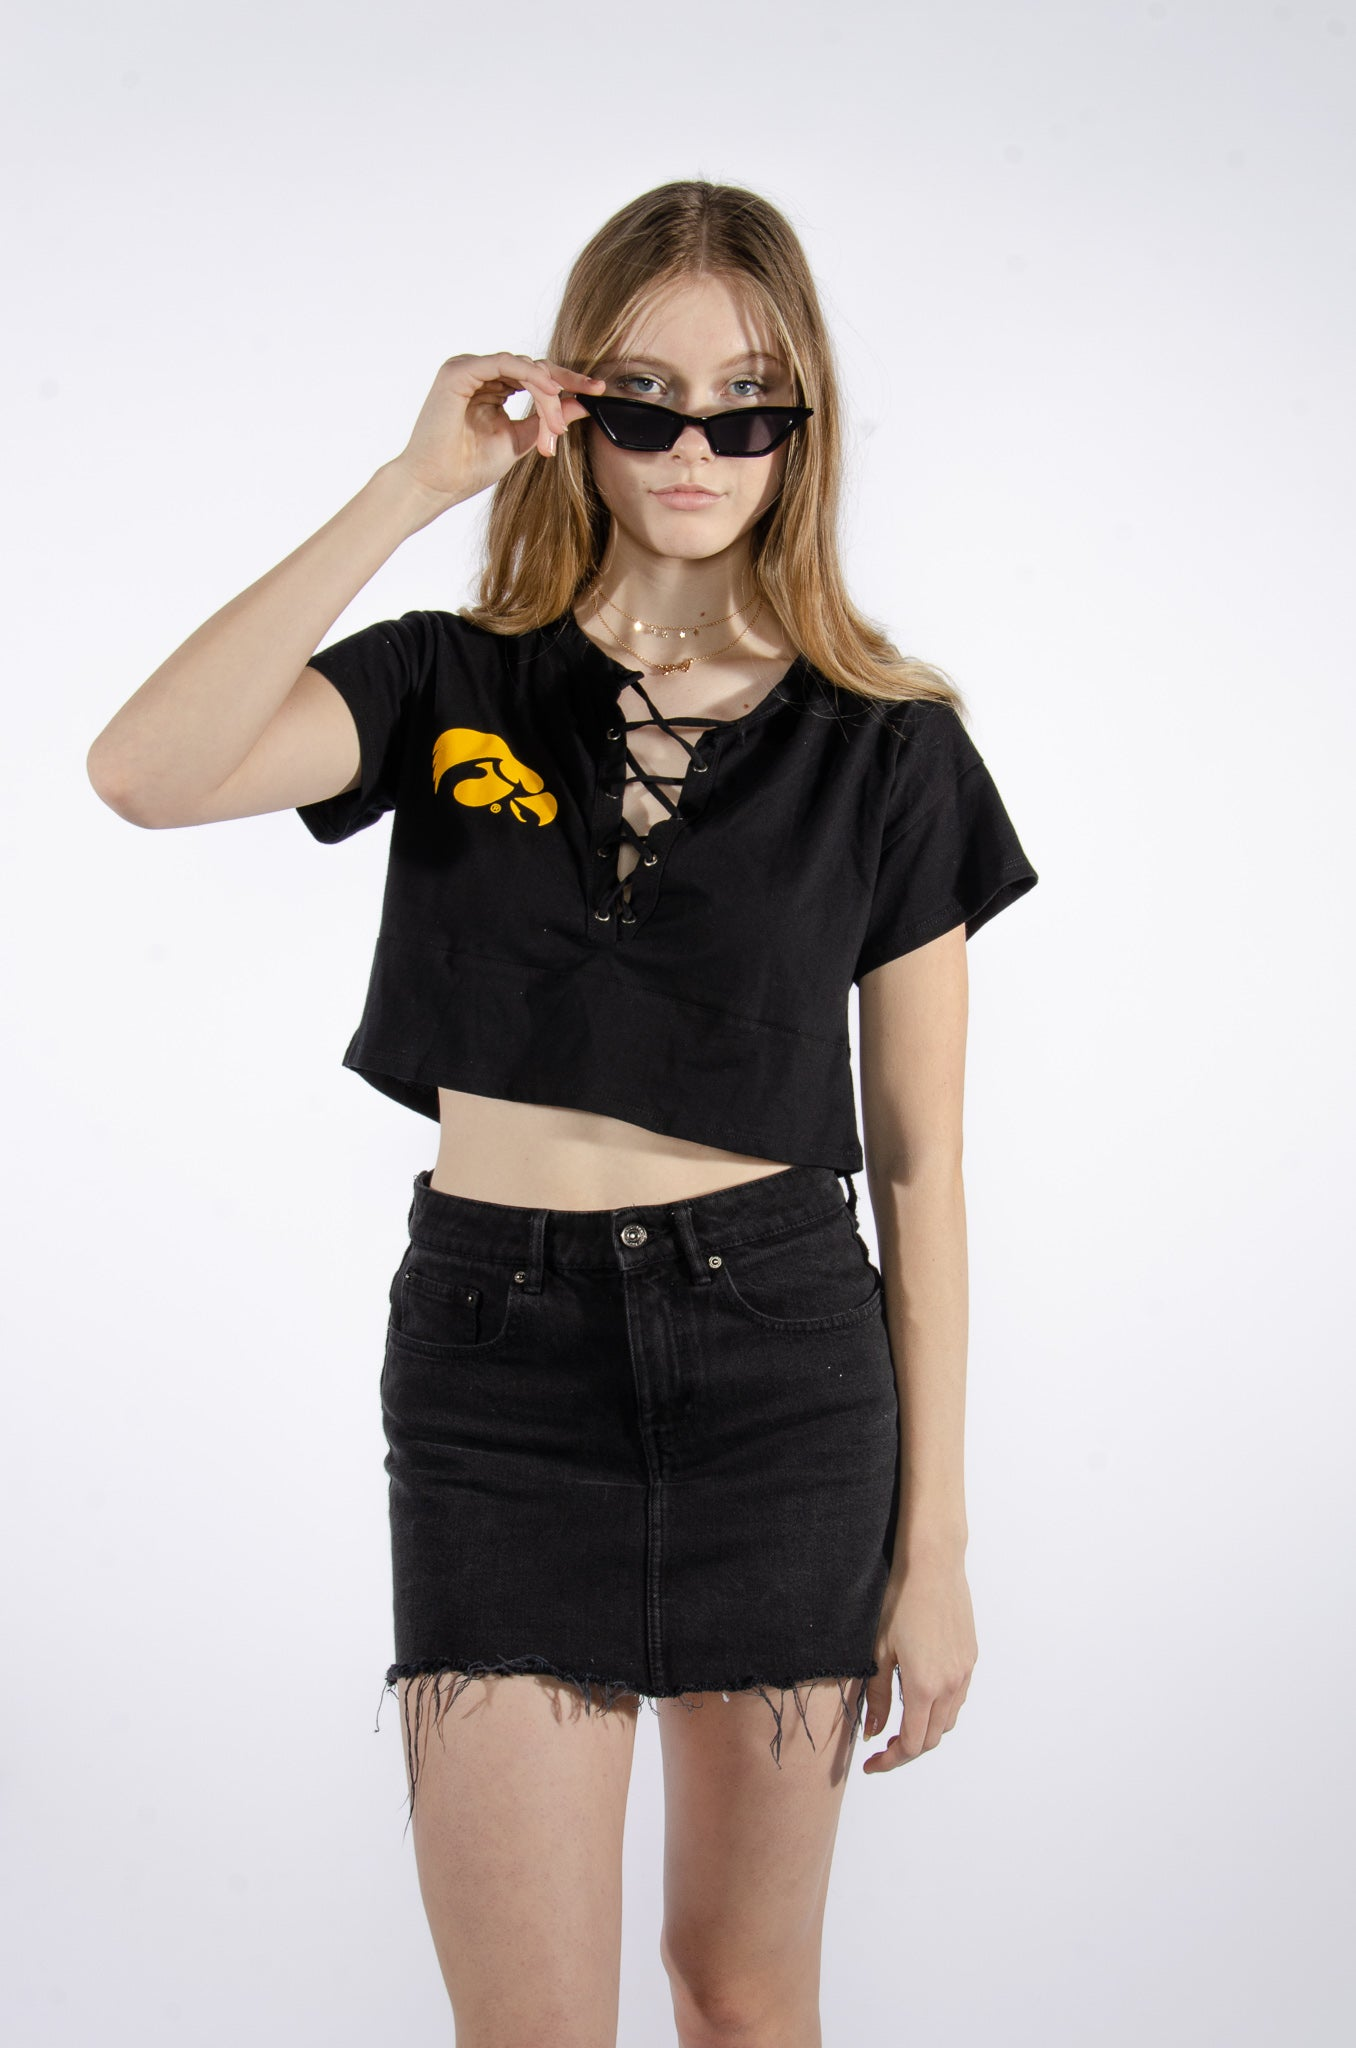 Iowa Lace-up Crop Top - Hype and Vice